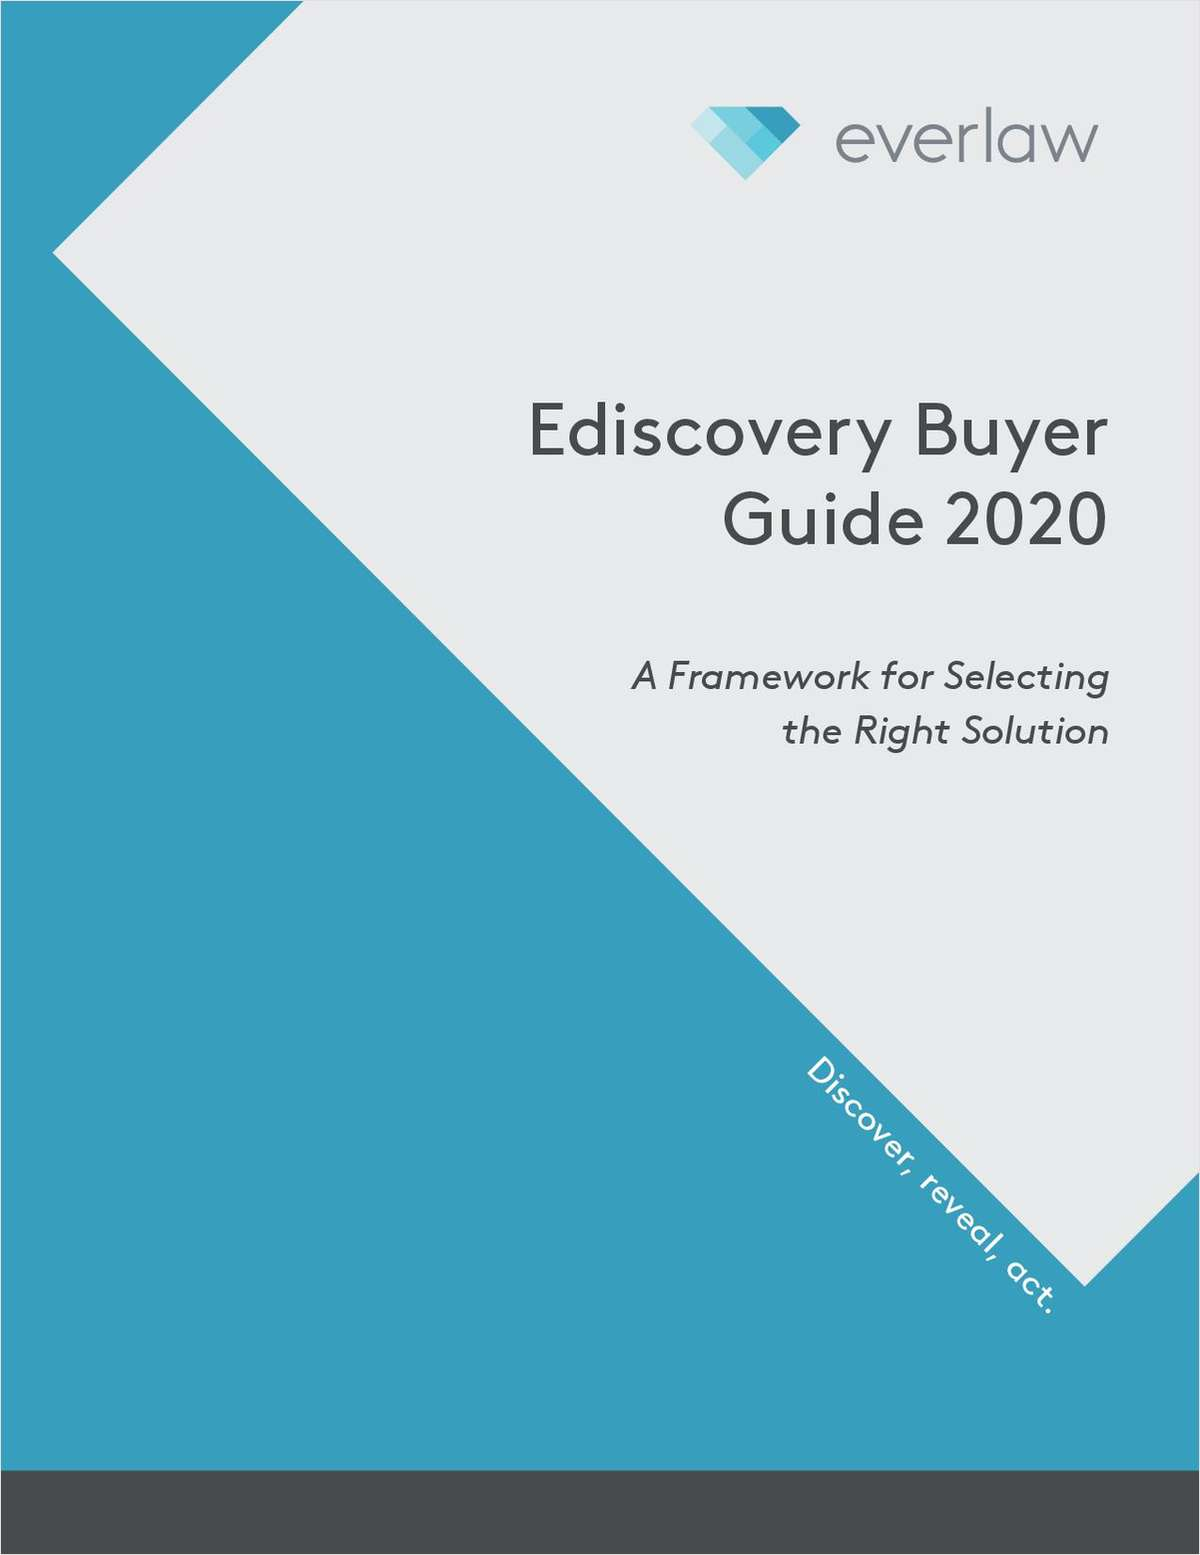 2020 Ediscovery Guide